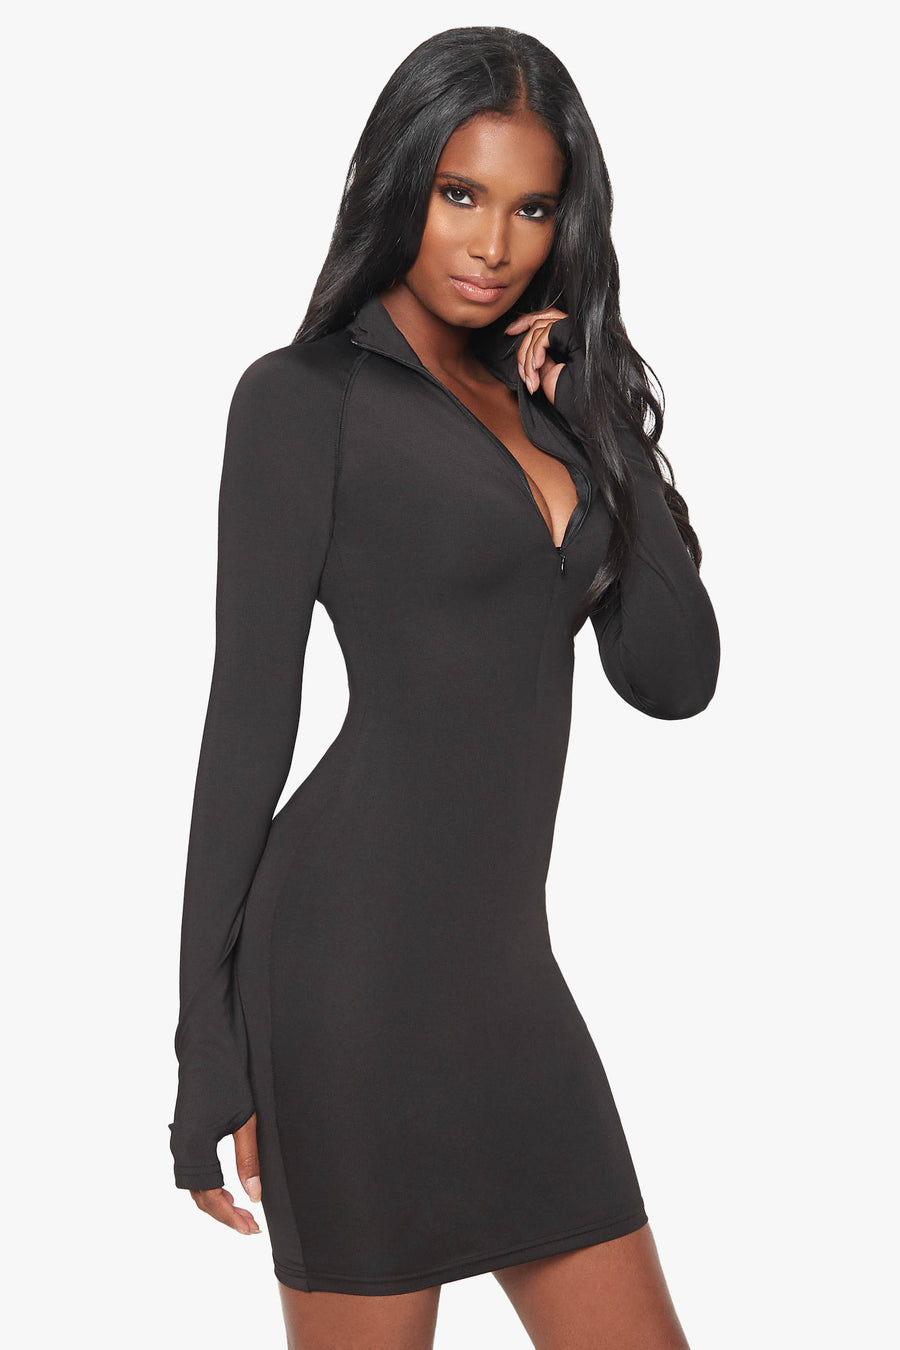 Hollywood and Highland Zip Up Dress